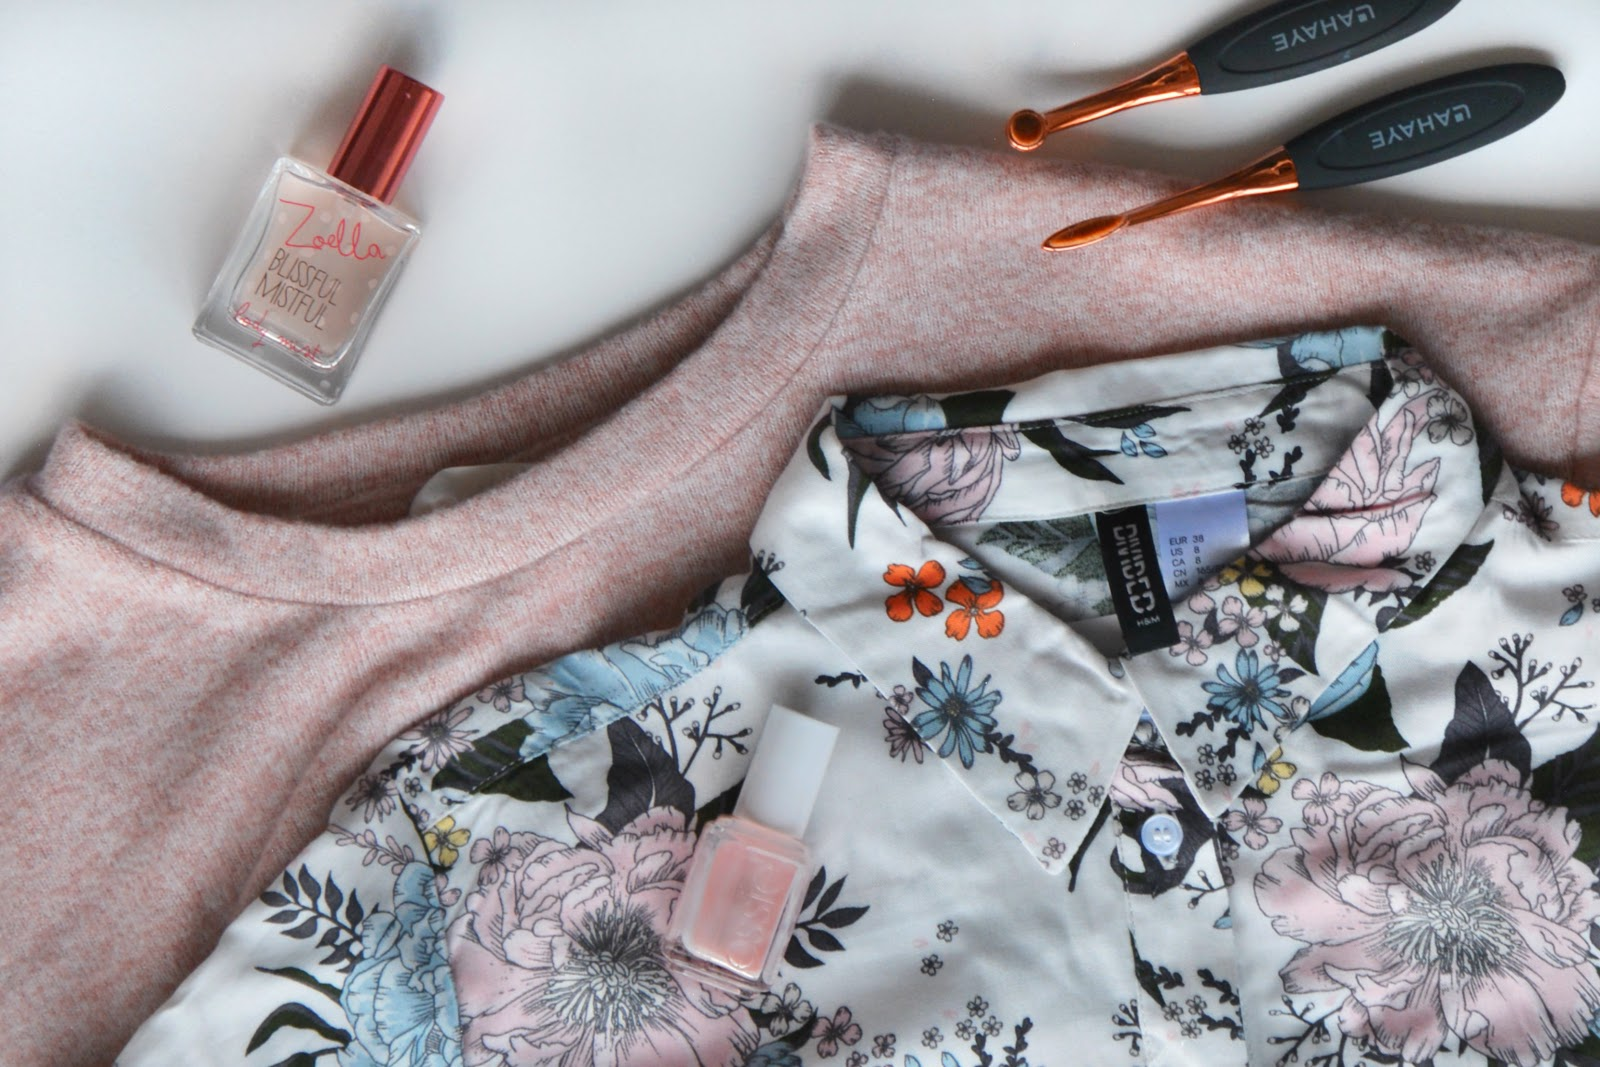 H&M Blouse, H&M Sweatshirt, Zoella Blissful Mistful Body Mist, Lahaye Brushes, Essie Nail Polish